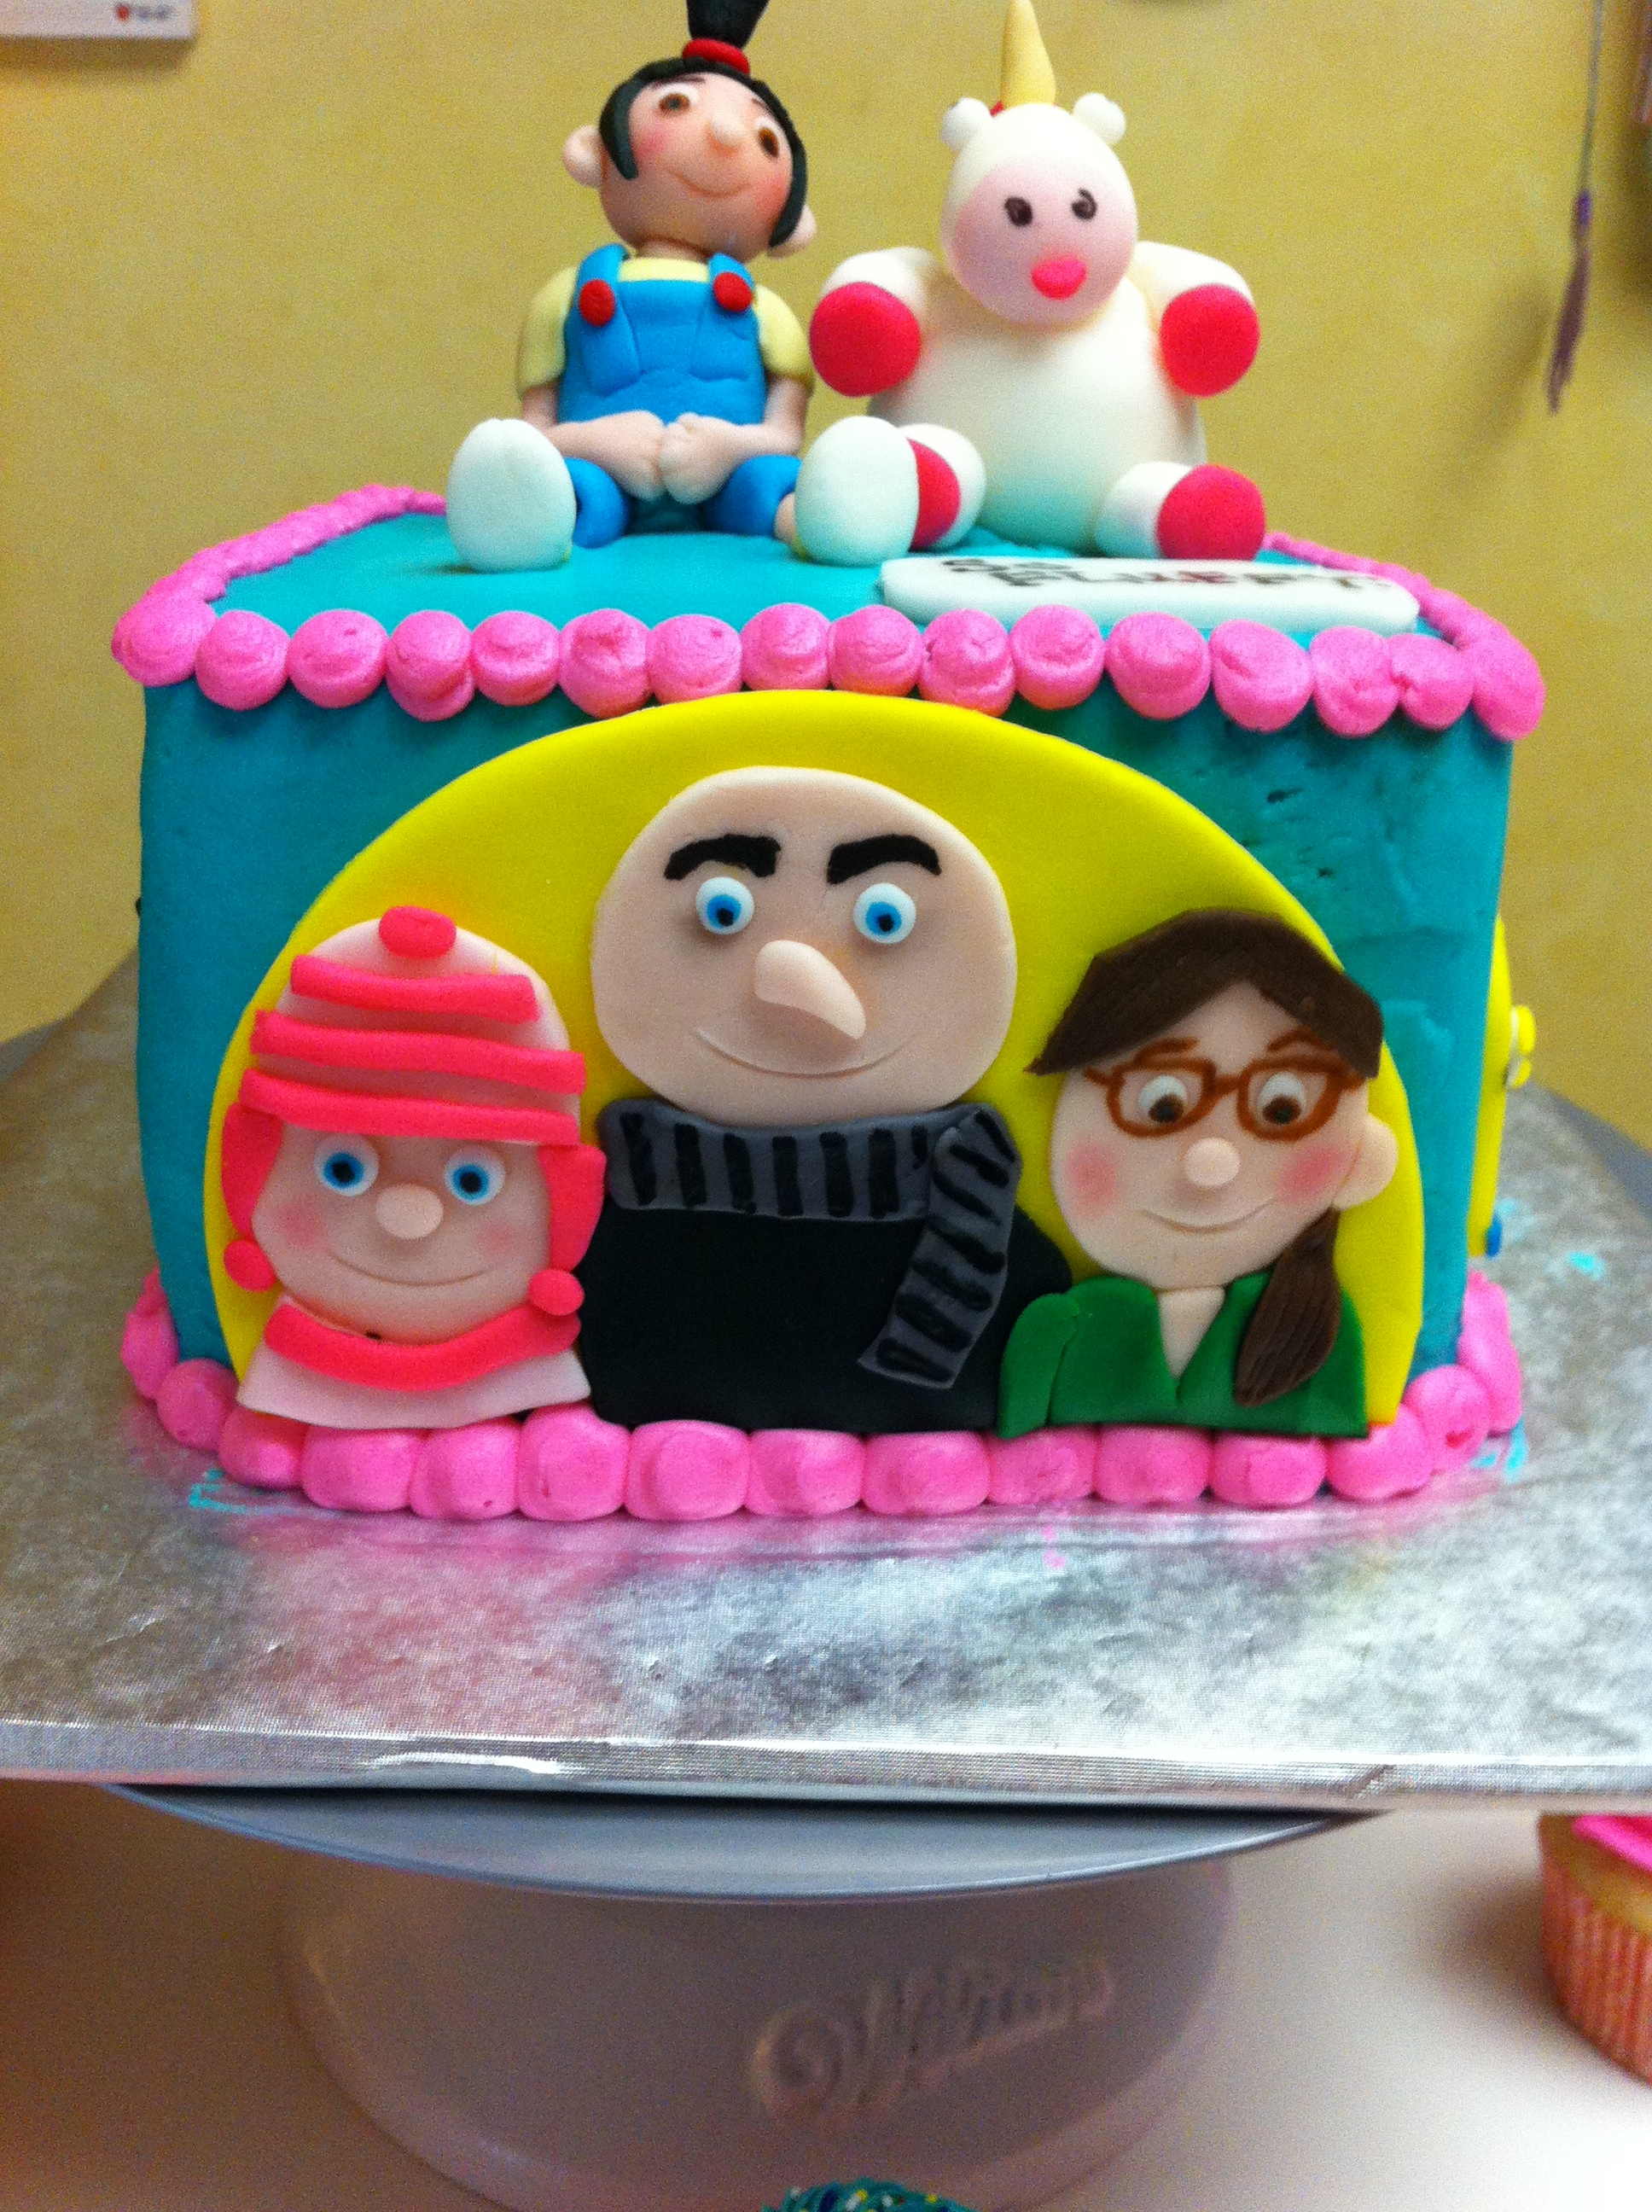 This Despicable Me Edible Cake Topper is easy to use and perfect for all your Minion cake decorating needs! These edible toppers are perfect for your cakes, cupcakes, cookies, chocolate covered oreos, chocolate or hard candy lollipops, candy apples, cake pops, rice krispie treats and more!